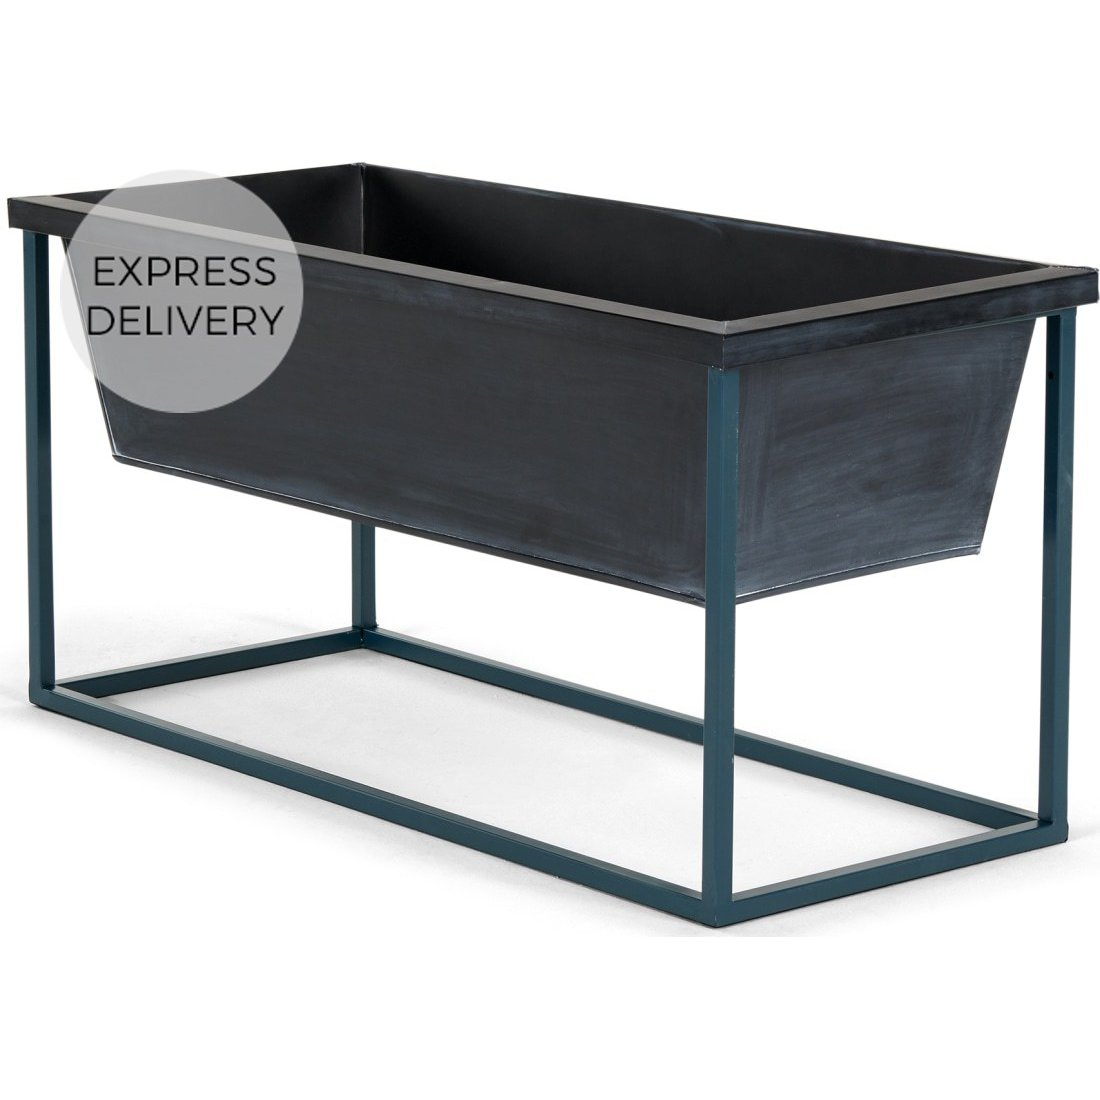 image-Noor Free Standing Low Galvanized Iron Rectangular Plant Stand, Black & Teal